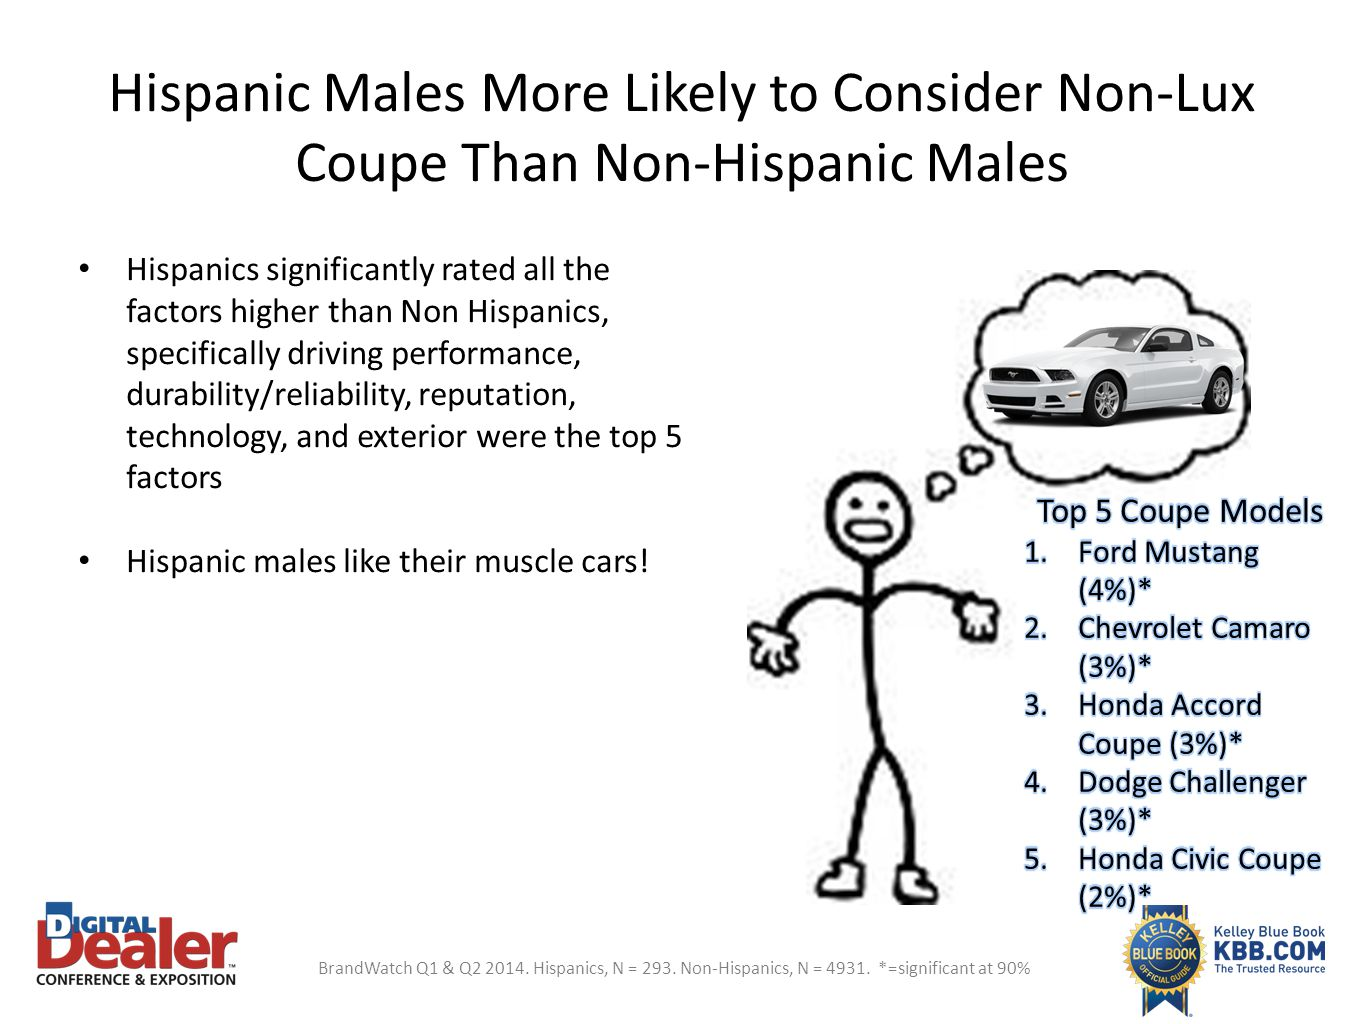 Hispanic Males More Likely to Consider Non-Lux Coupe Than Non-Hispanic Males